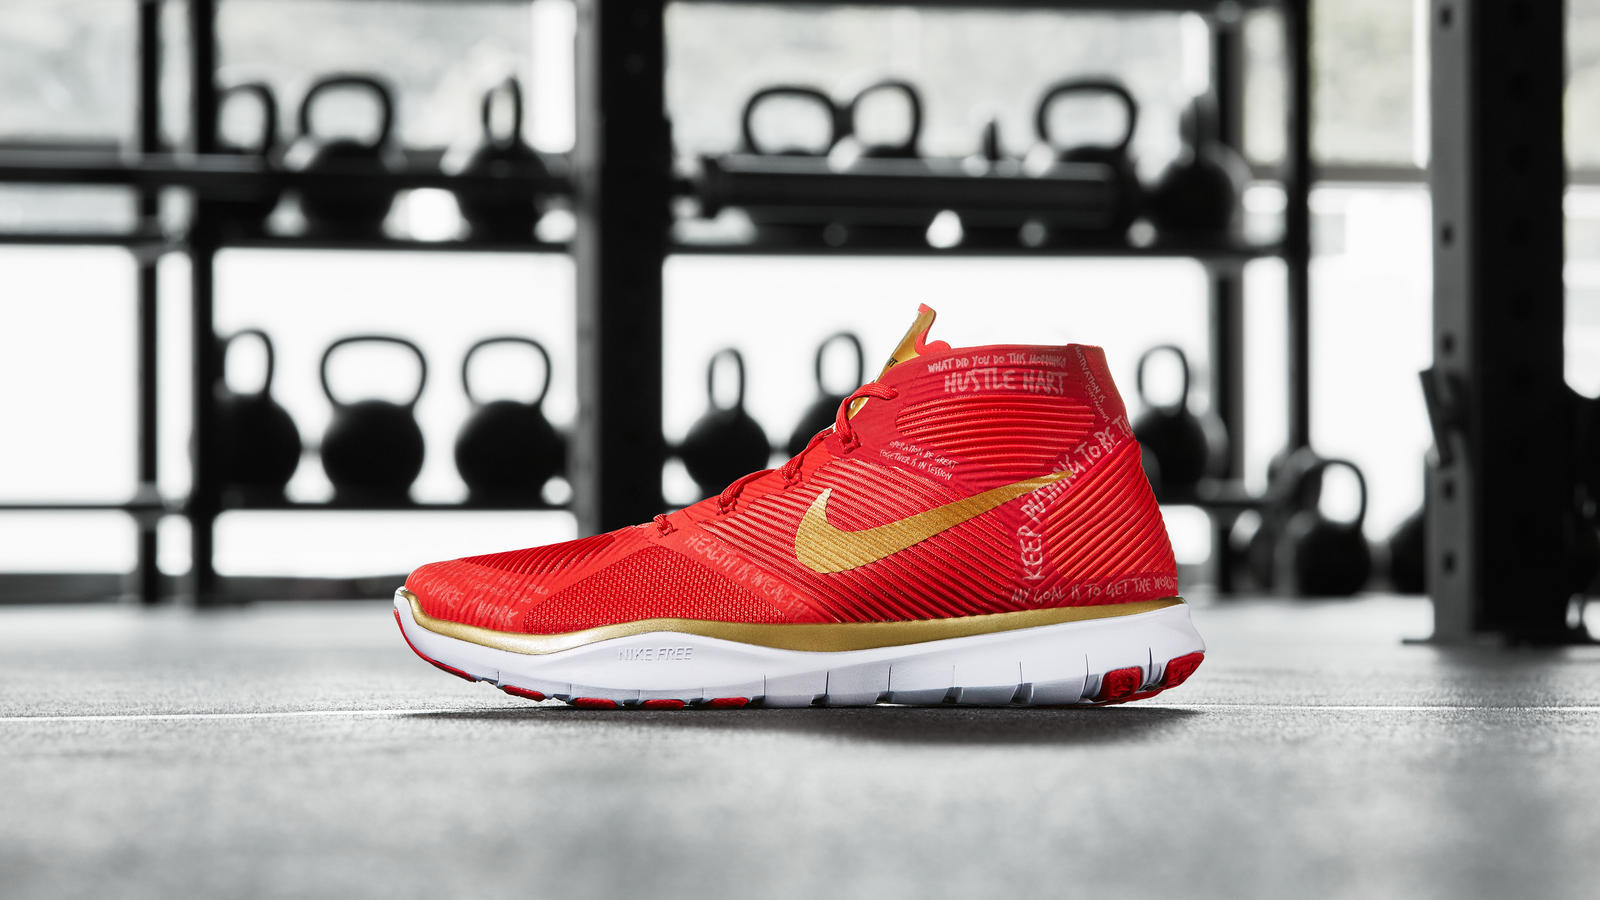 Nike news sneaker feed red mns hart training p 1566 hd 1600